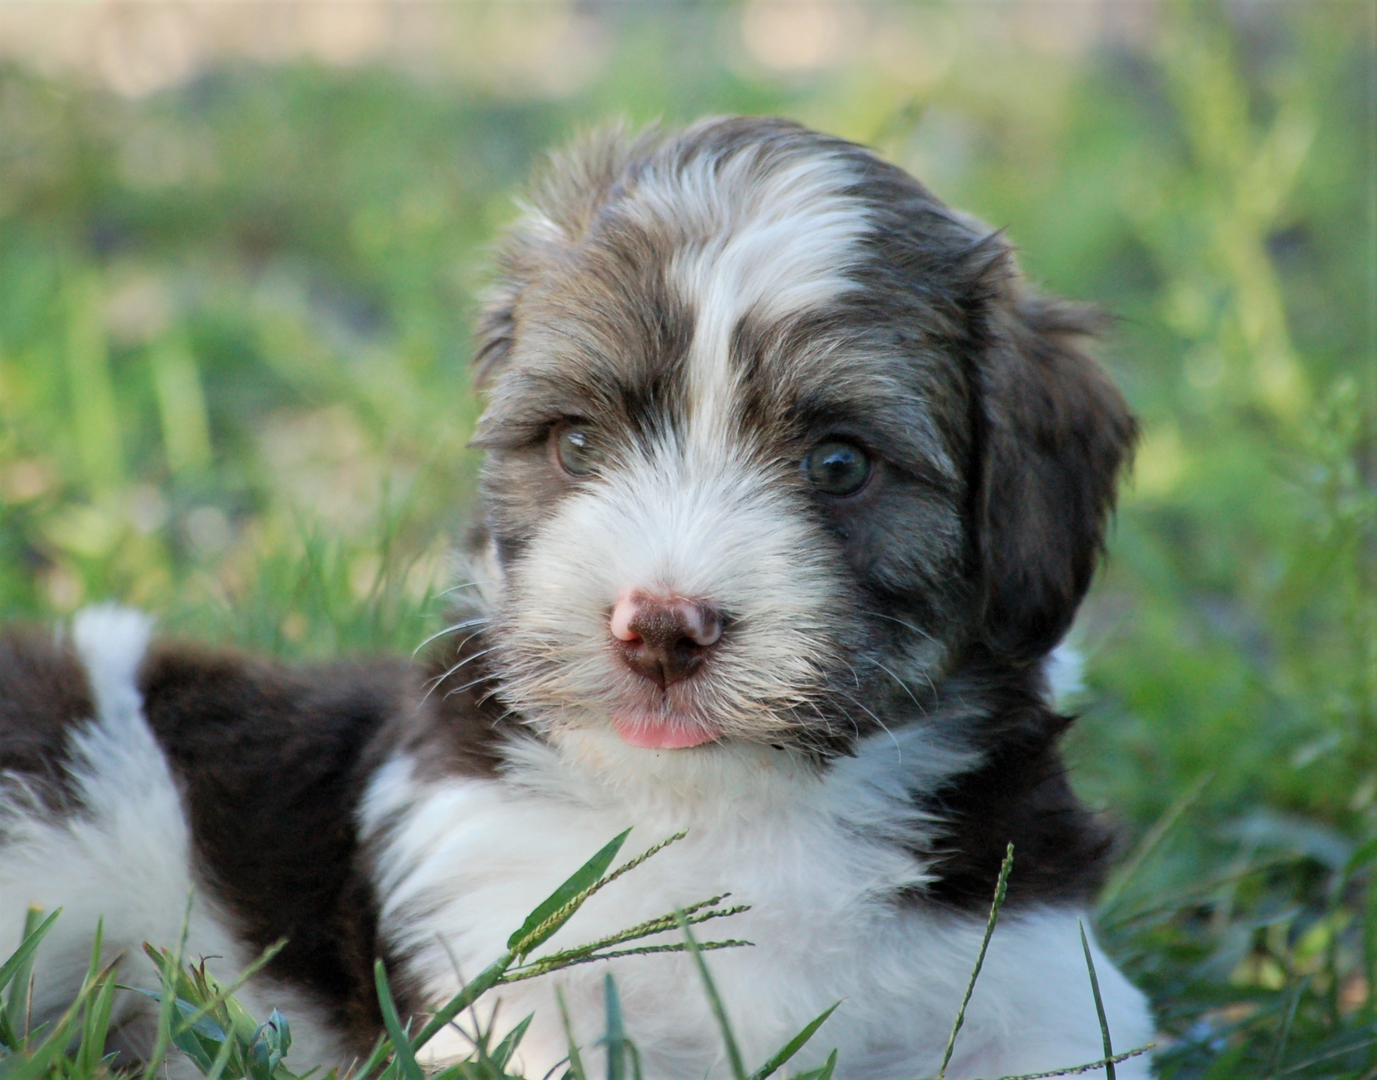 Akc Chocolate Puppies For Sale in Maine, Toy Dog - Maine